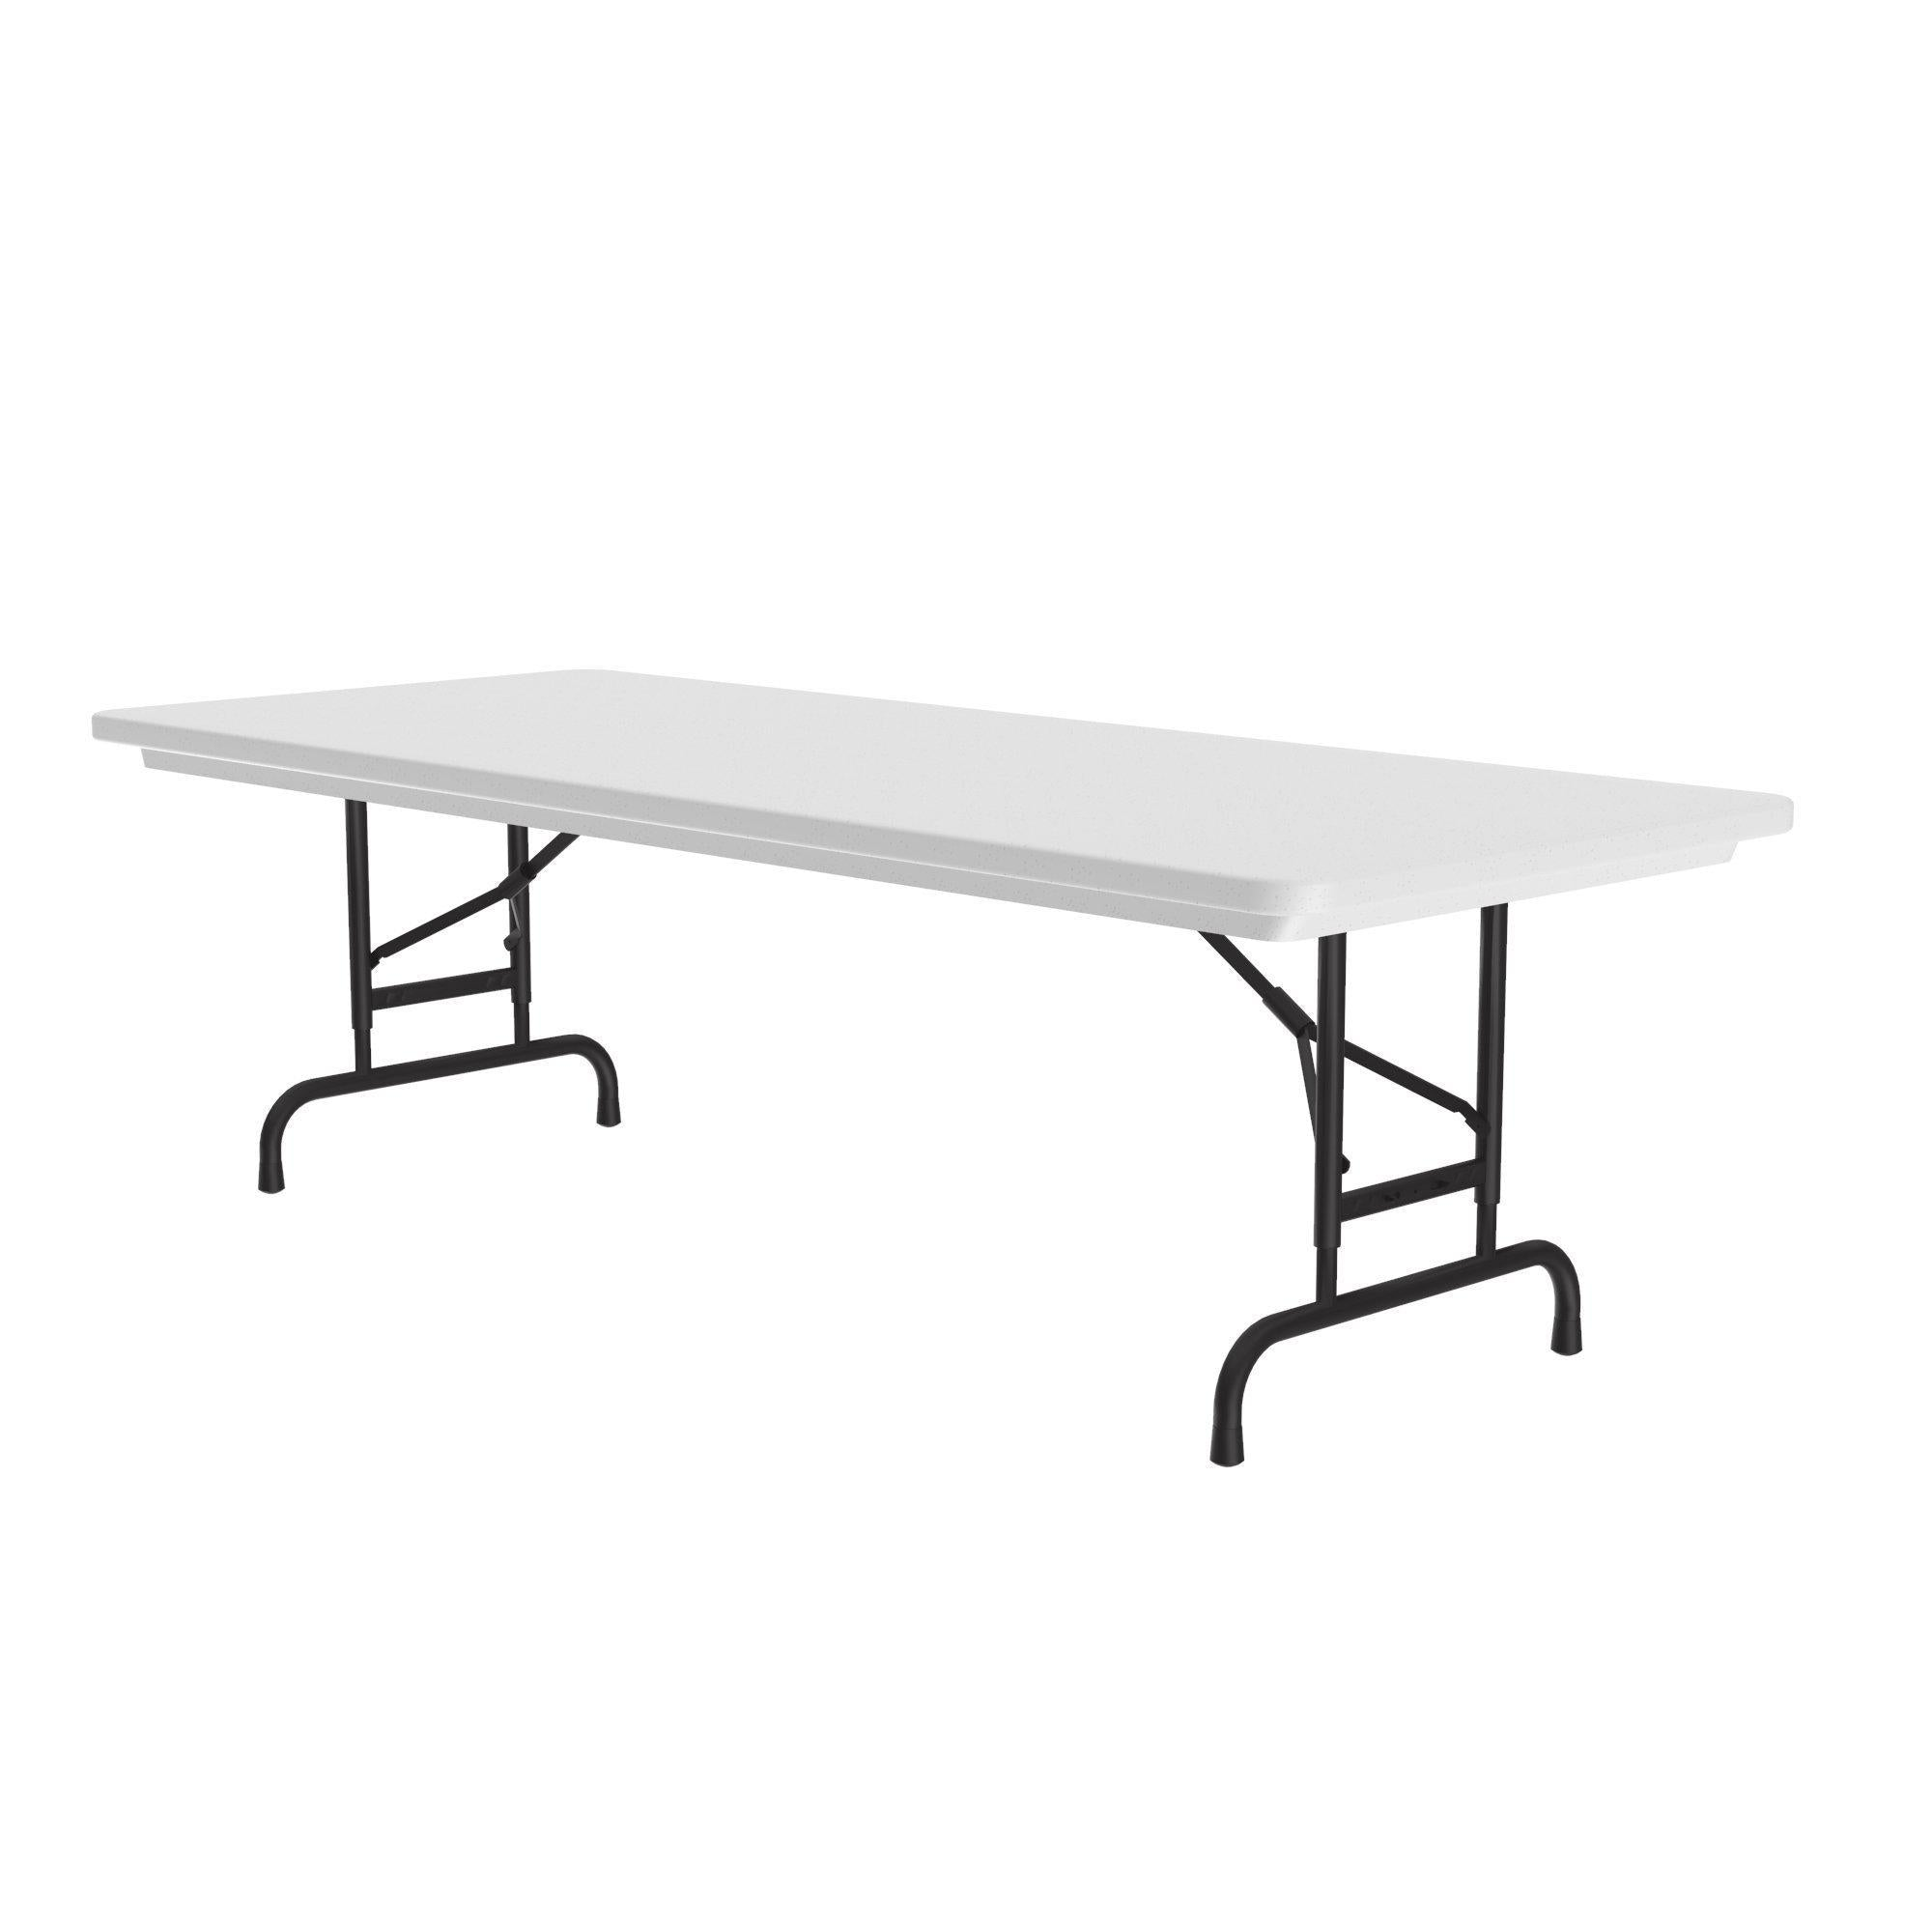 Heavy Duty Commercial Use Blow Molded Folding Table, Standard Colors, Adjustable Height, 30 x 72